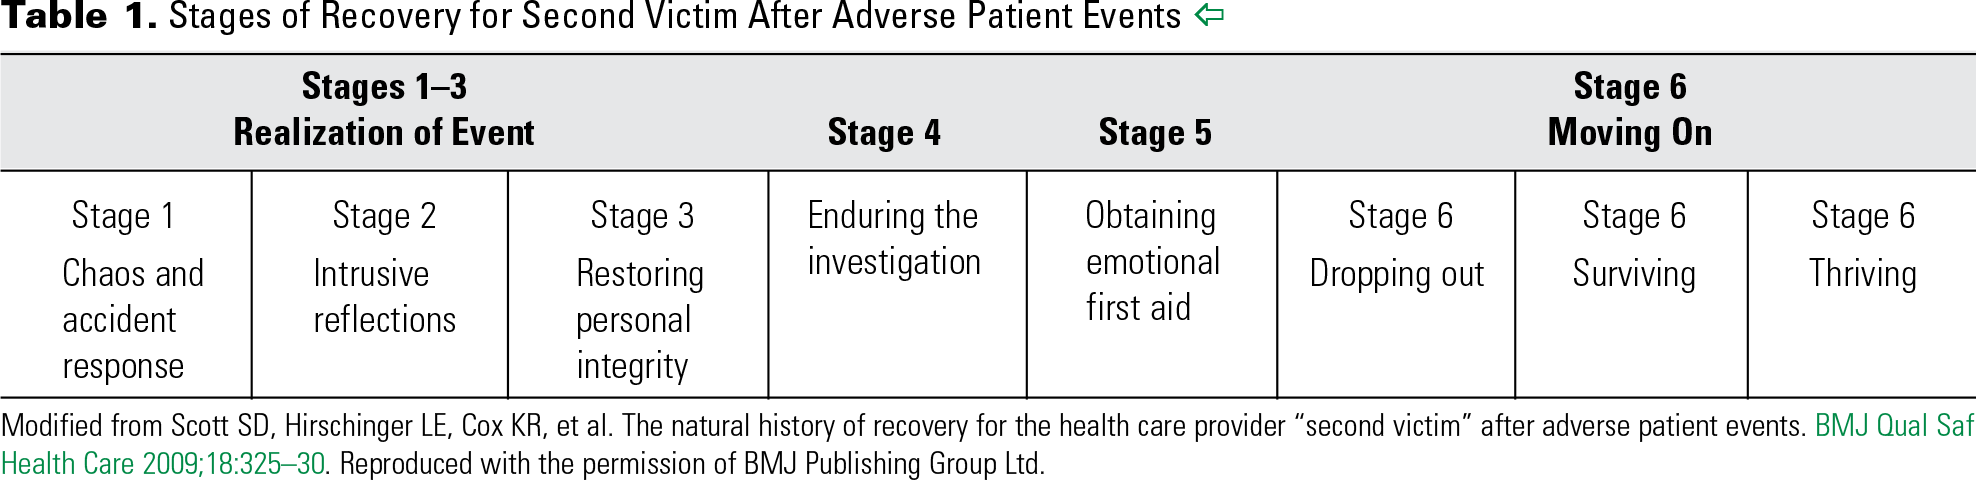 Disclosure and Discussion of Adverse Events